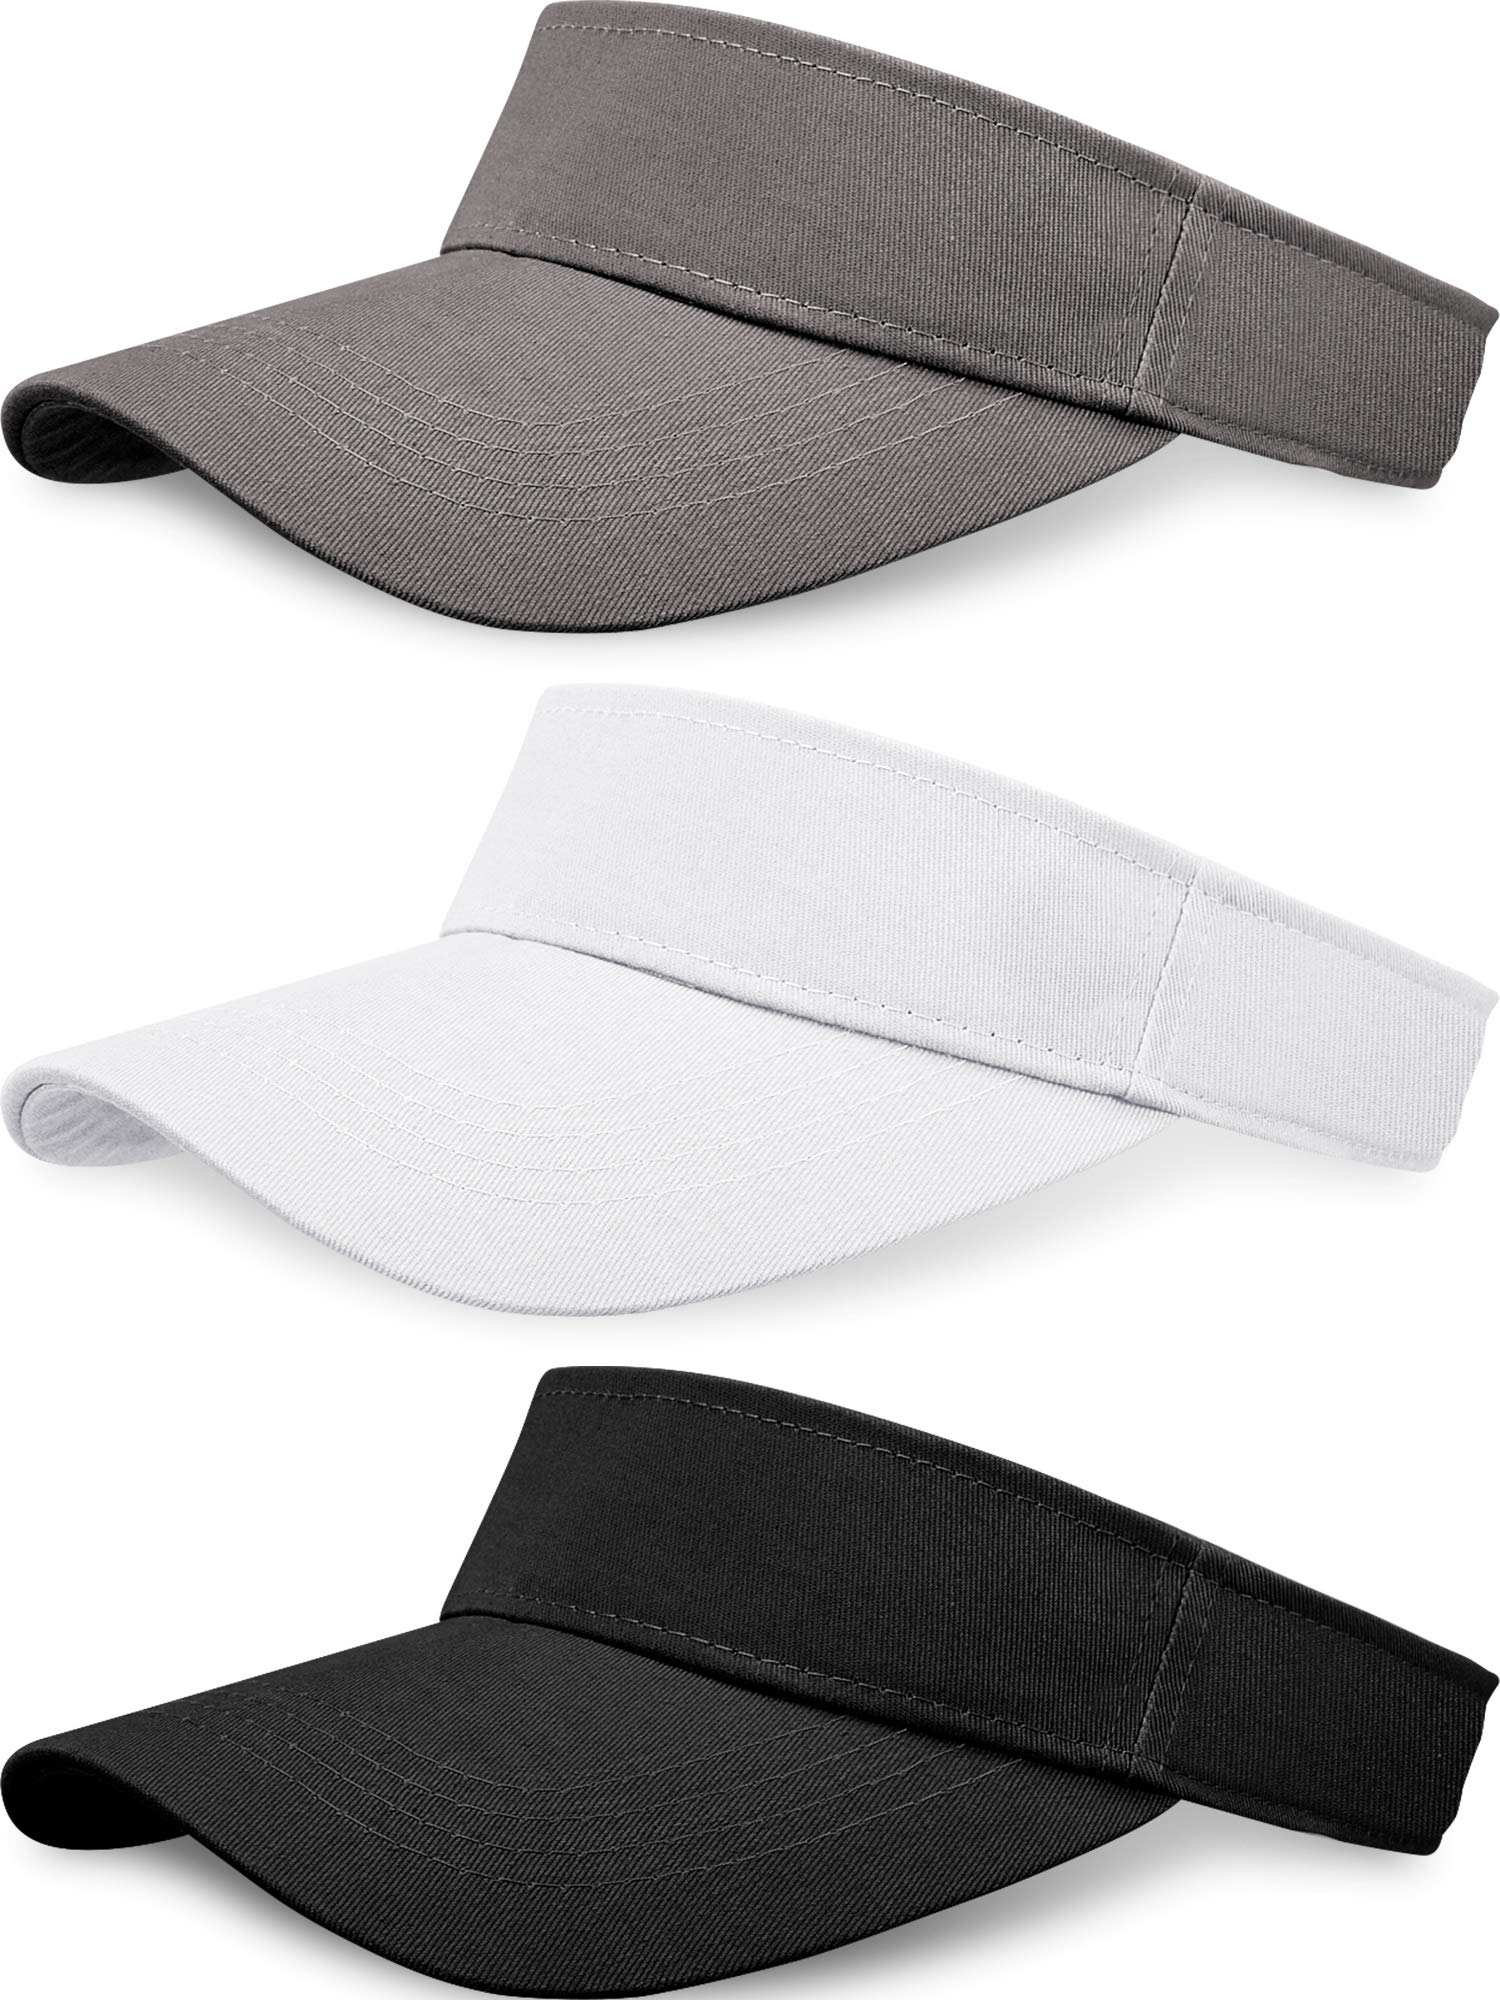 3 Pieces Sun Sports Visor Hats One Size Adjustable Cap for Women and Men (Color 1) by Geyoga